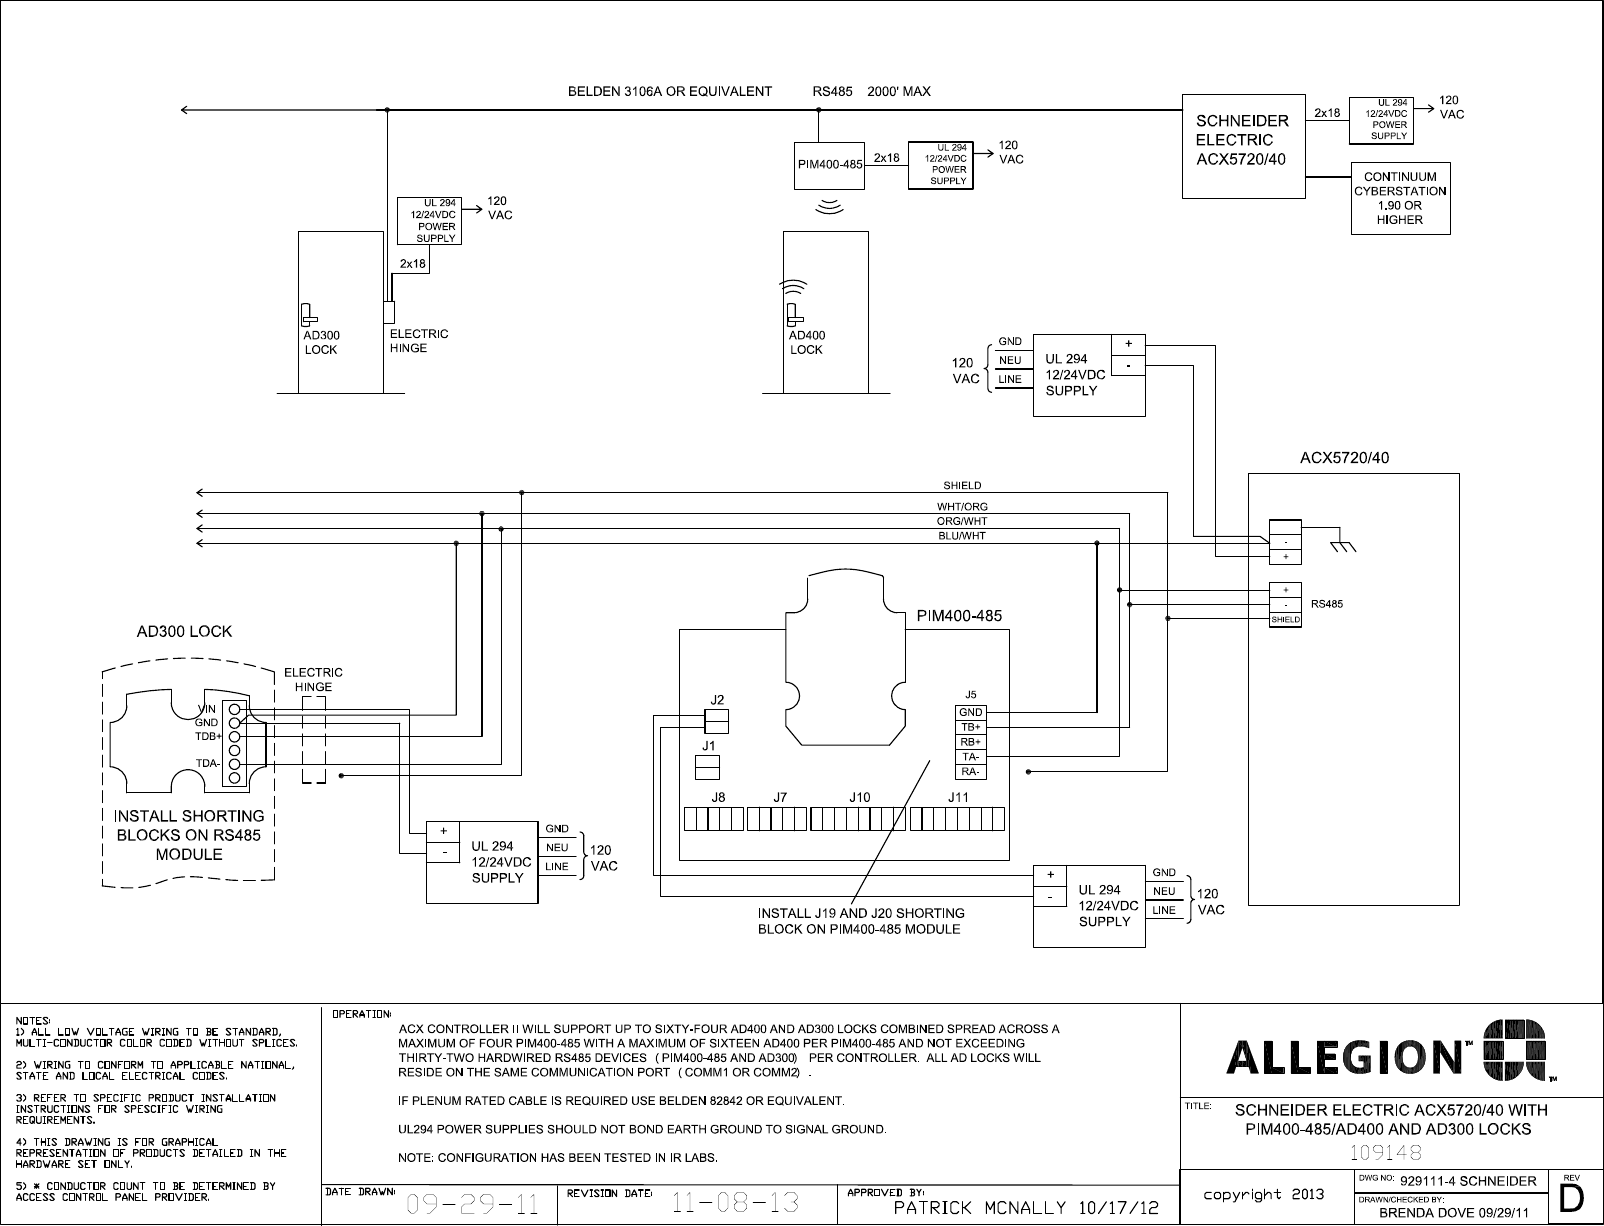 [TBQL_4184]  Schlage Nd80pdeu Wiring Diagram - 2011 Gmc Savana Fuse Diagram for Wiring  Diagram Schematics | Nd80pdeu Spa 626 Wiring Diagram |  | Wiring Diagram Schematics